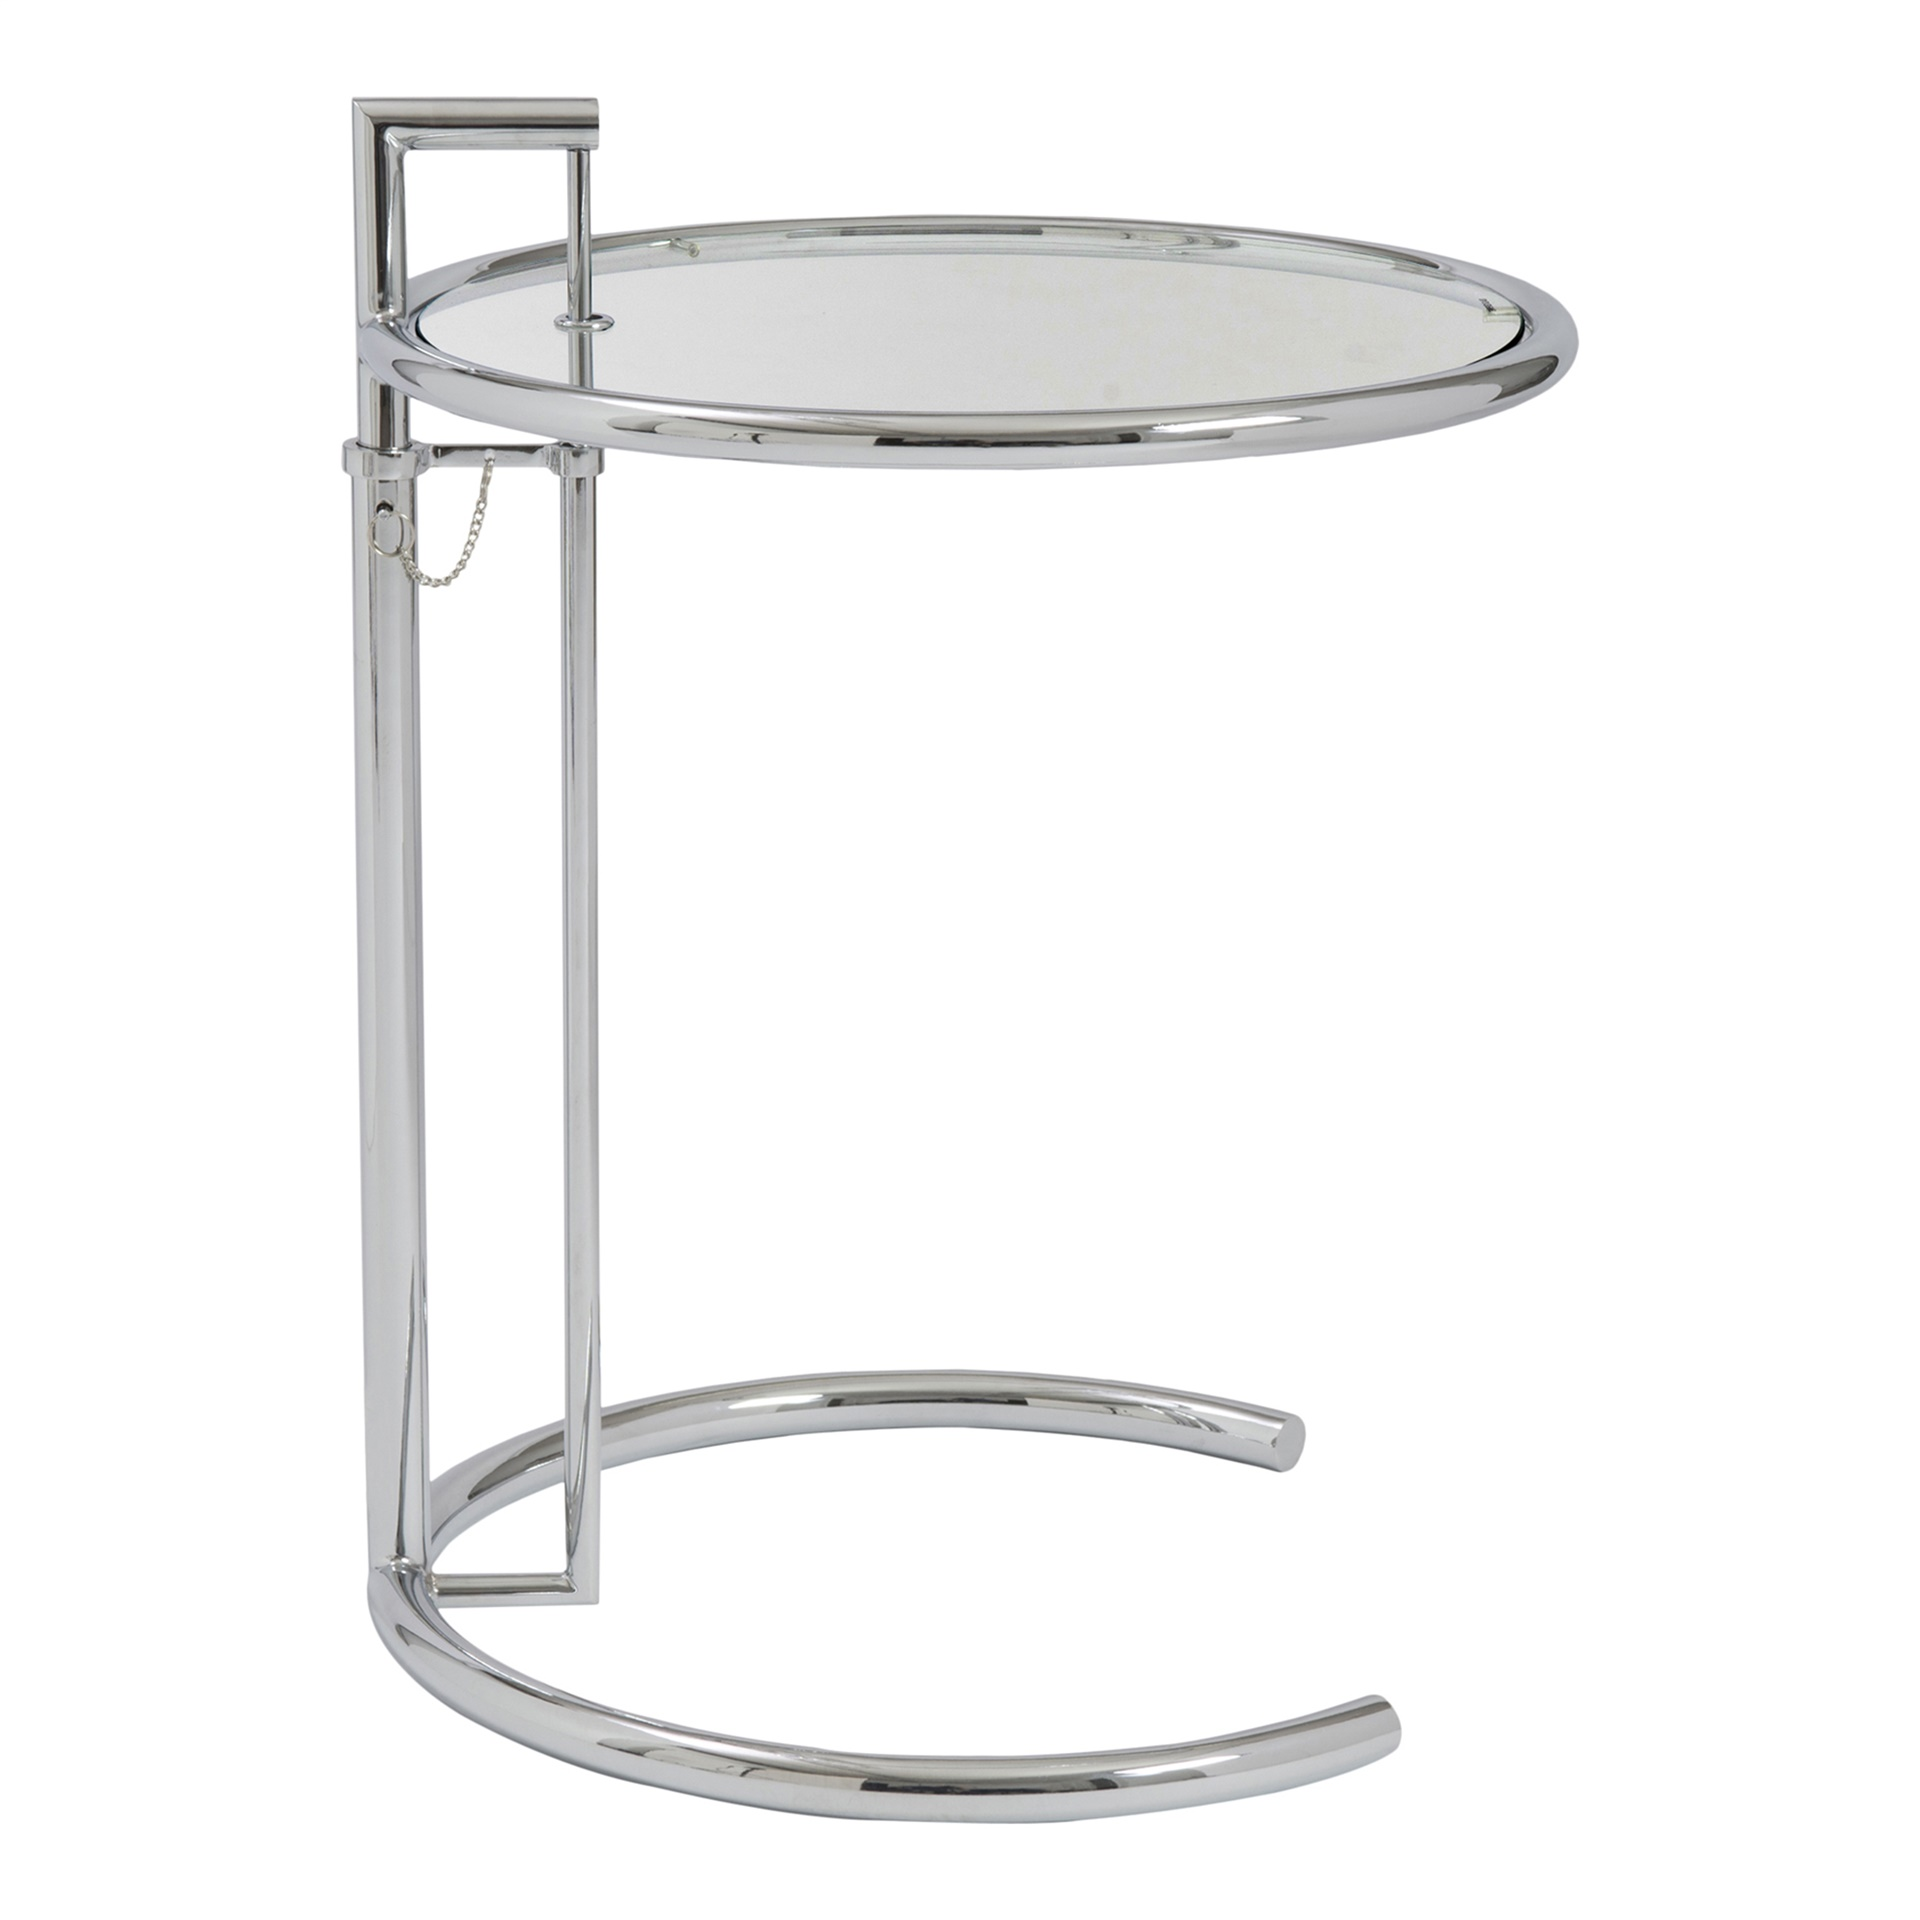 Eileen Gray Table - Eileen gray end table